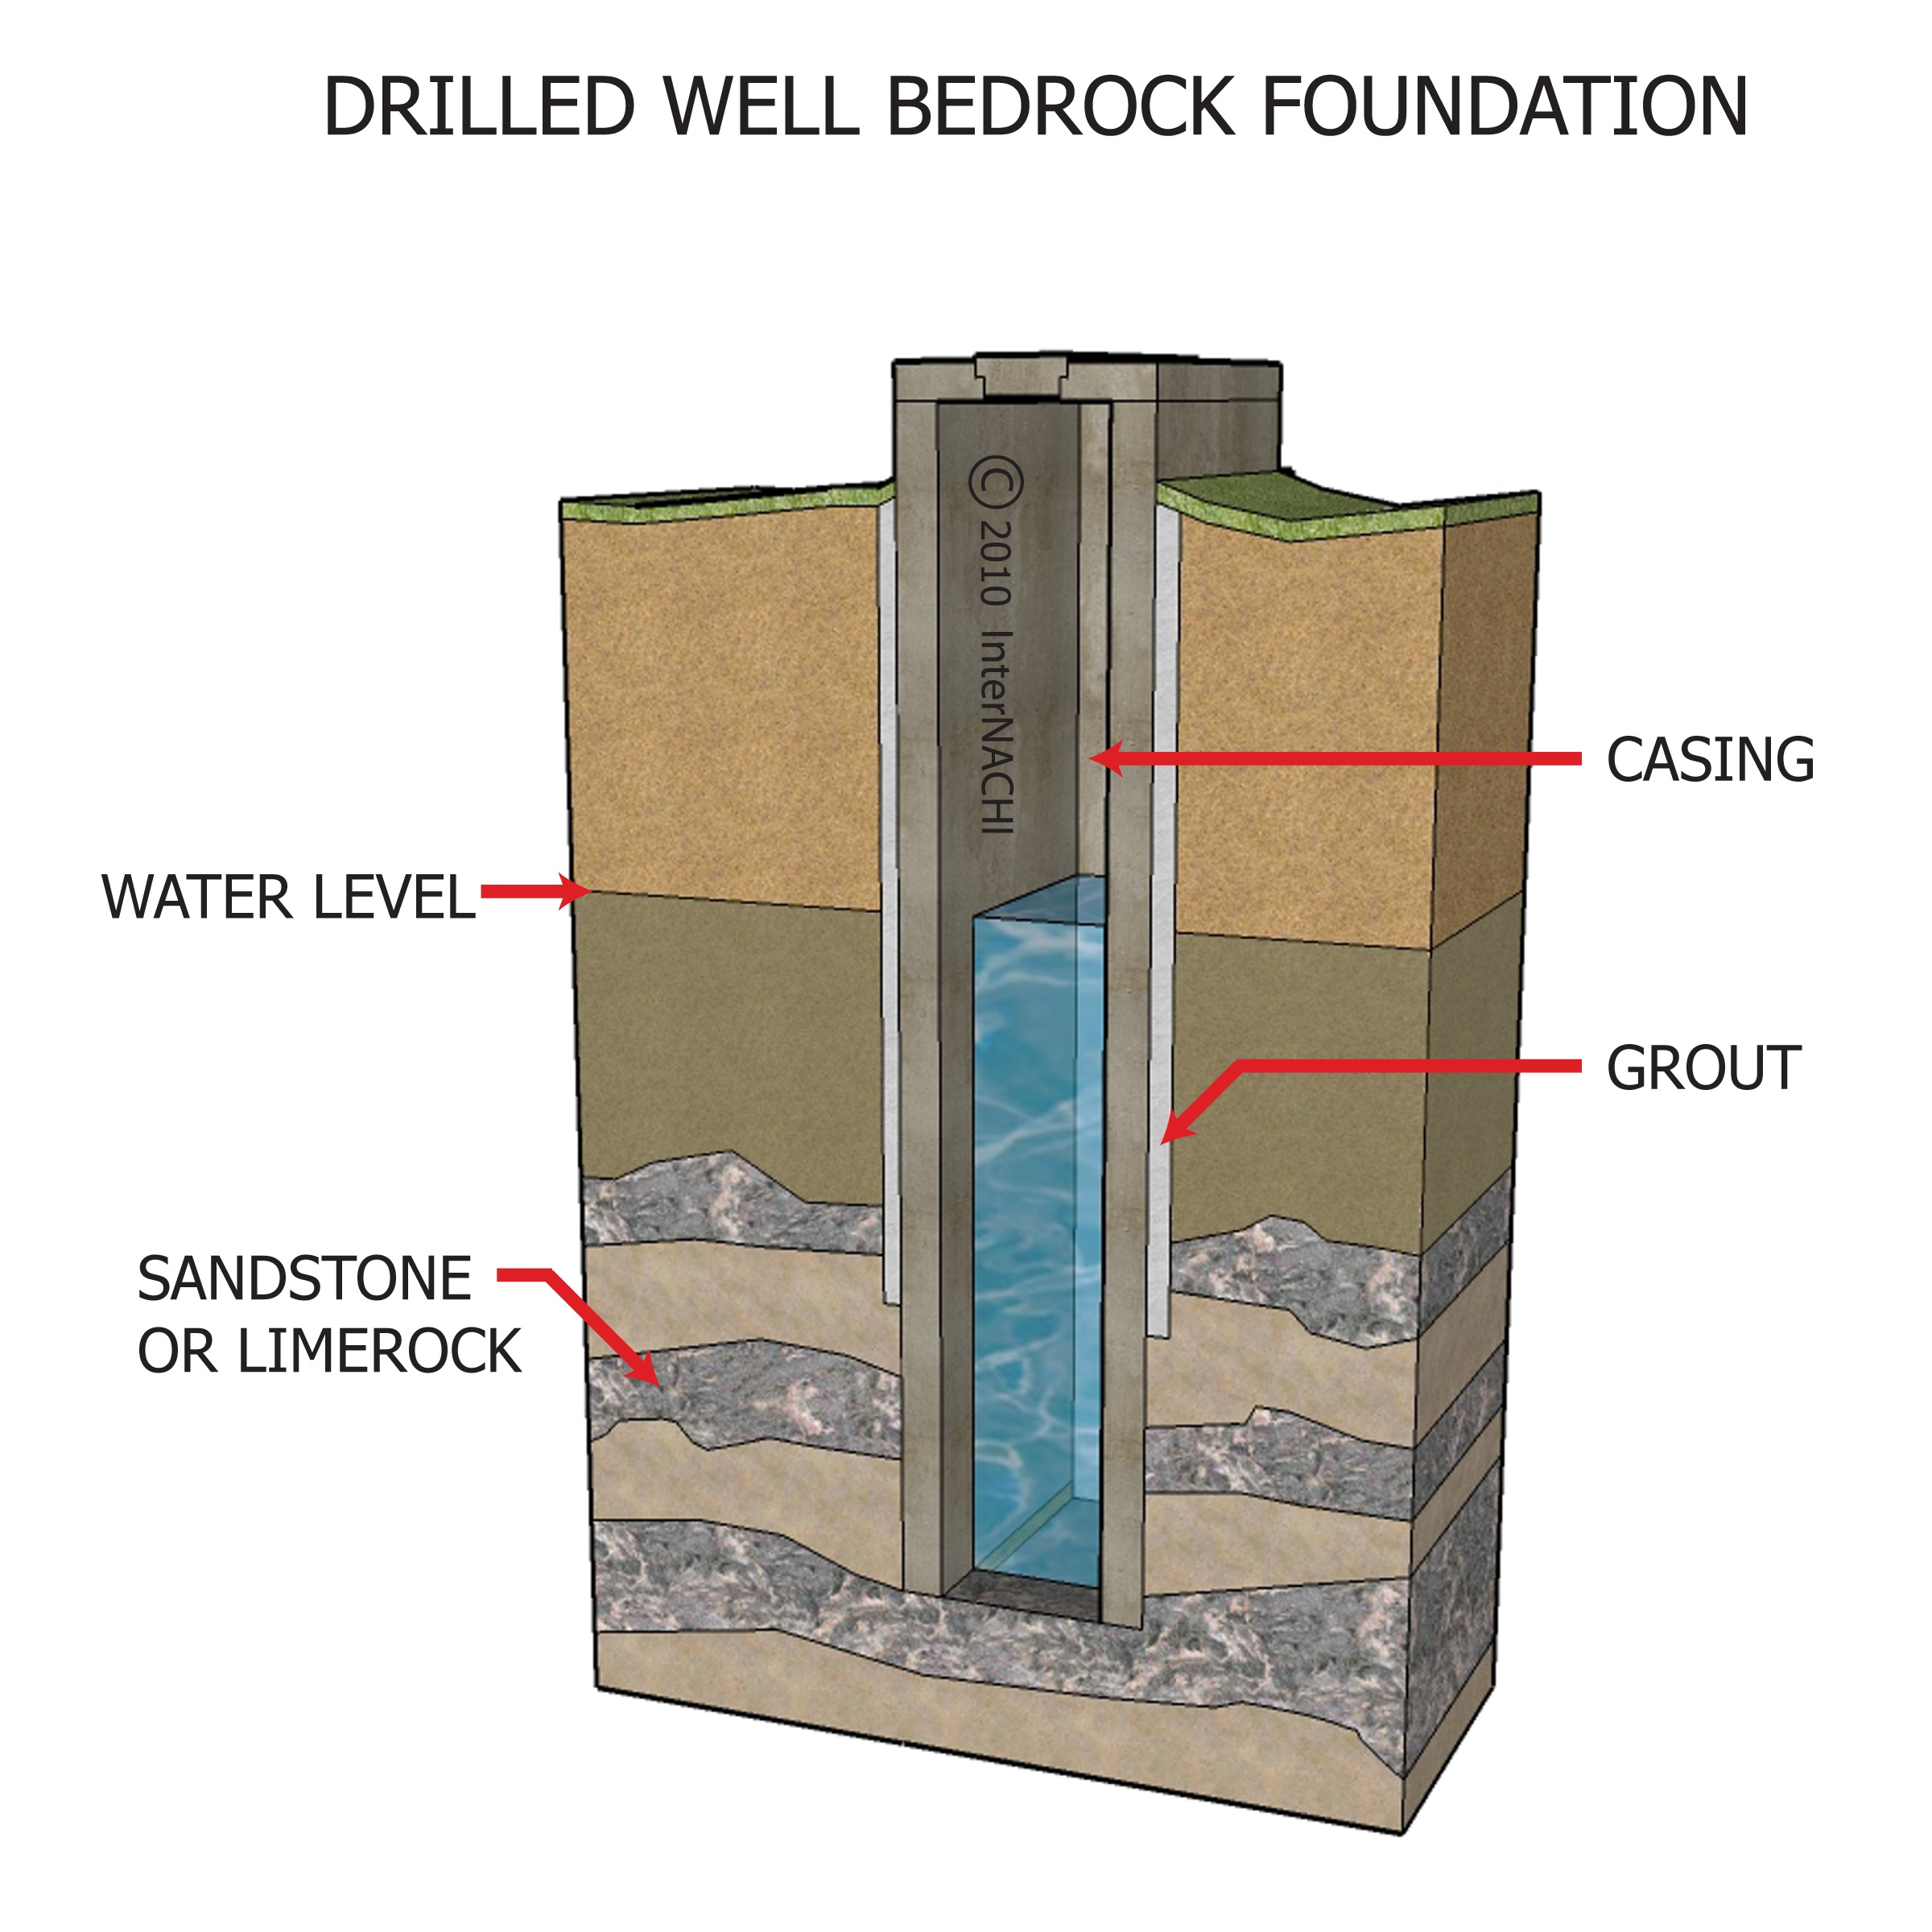 Drilled well, bedrock foundation.